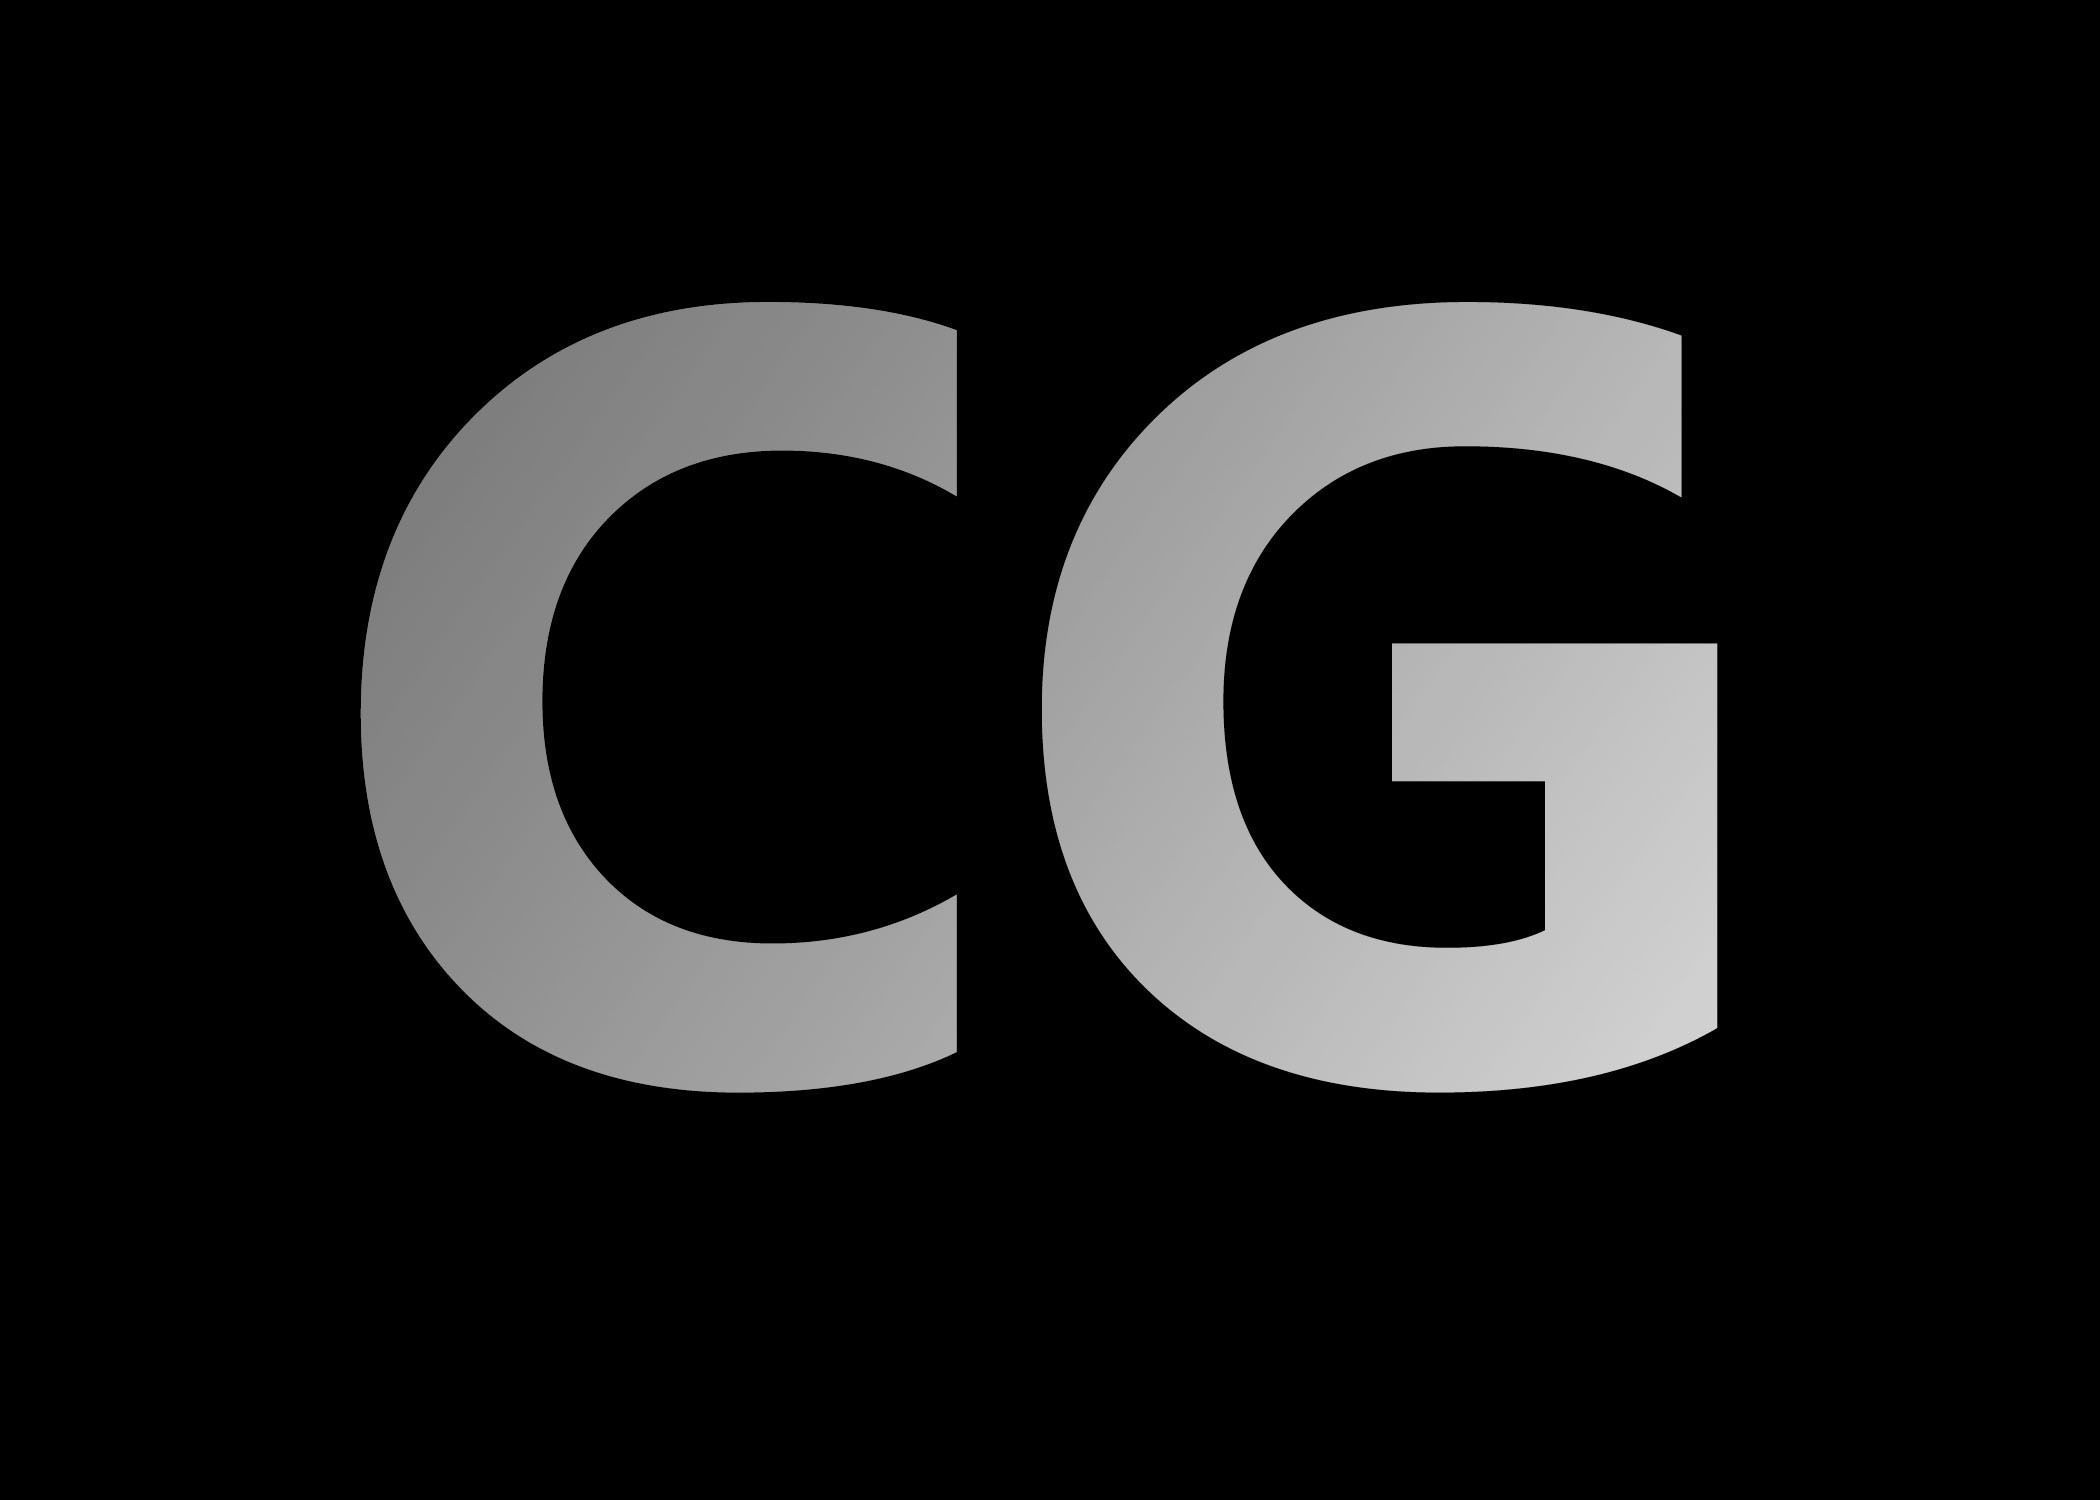 cgtrend